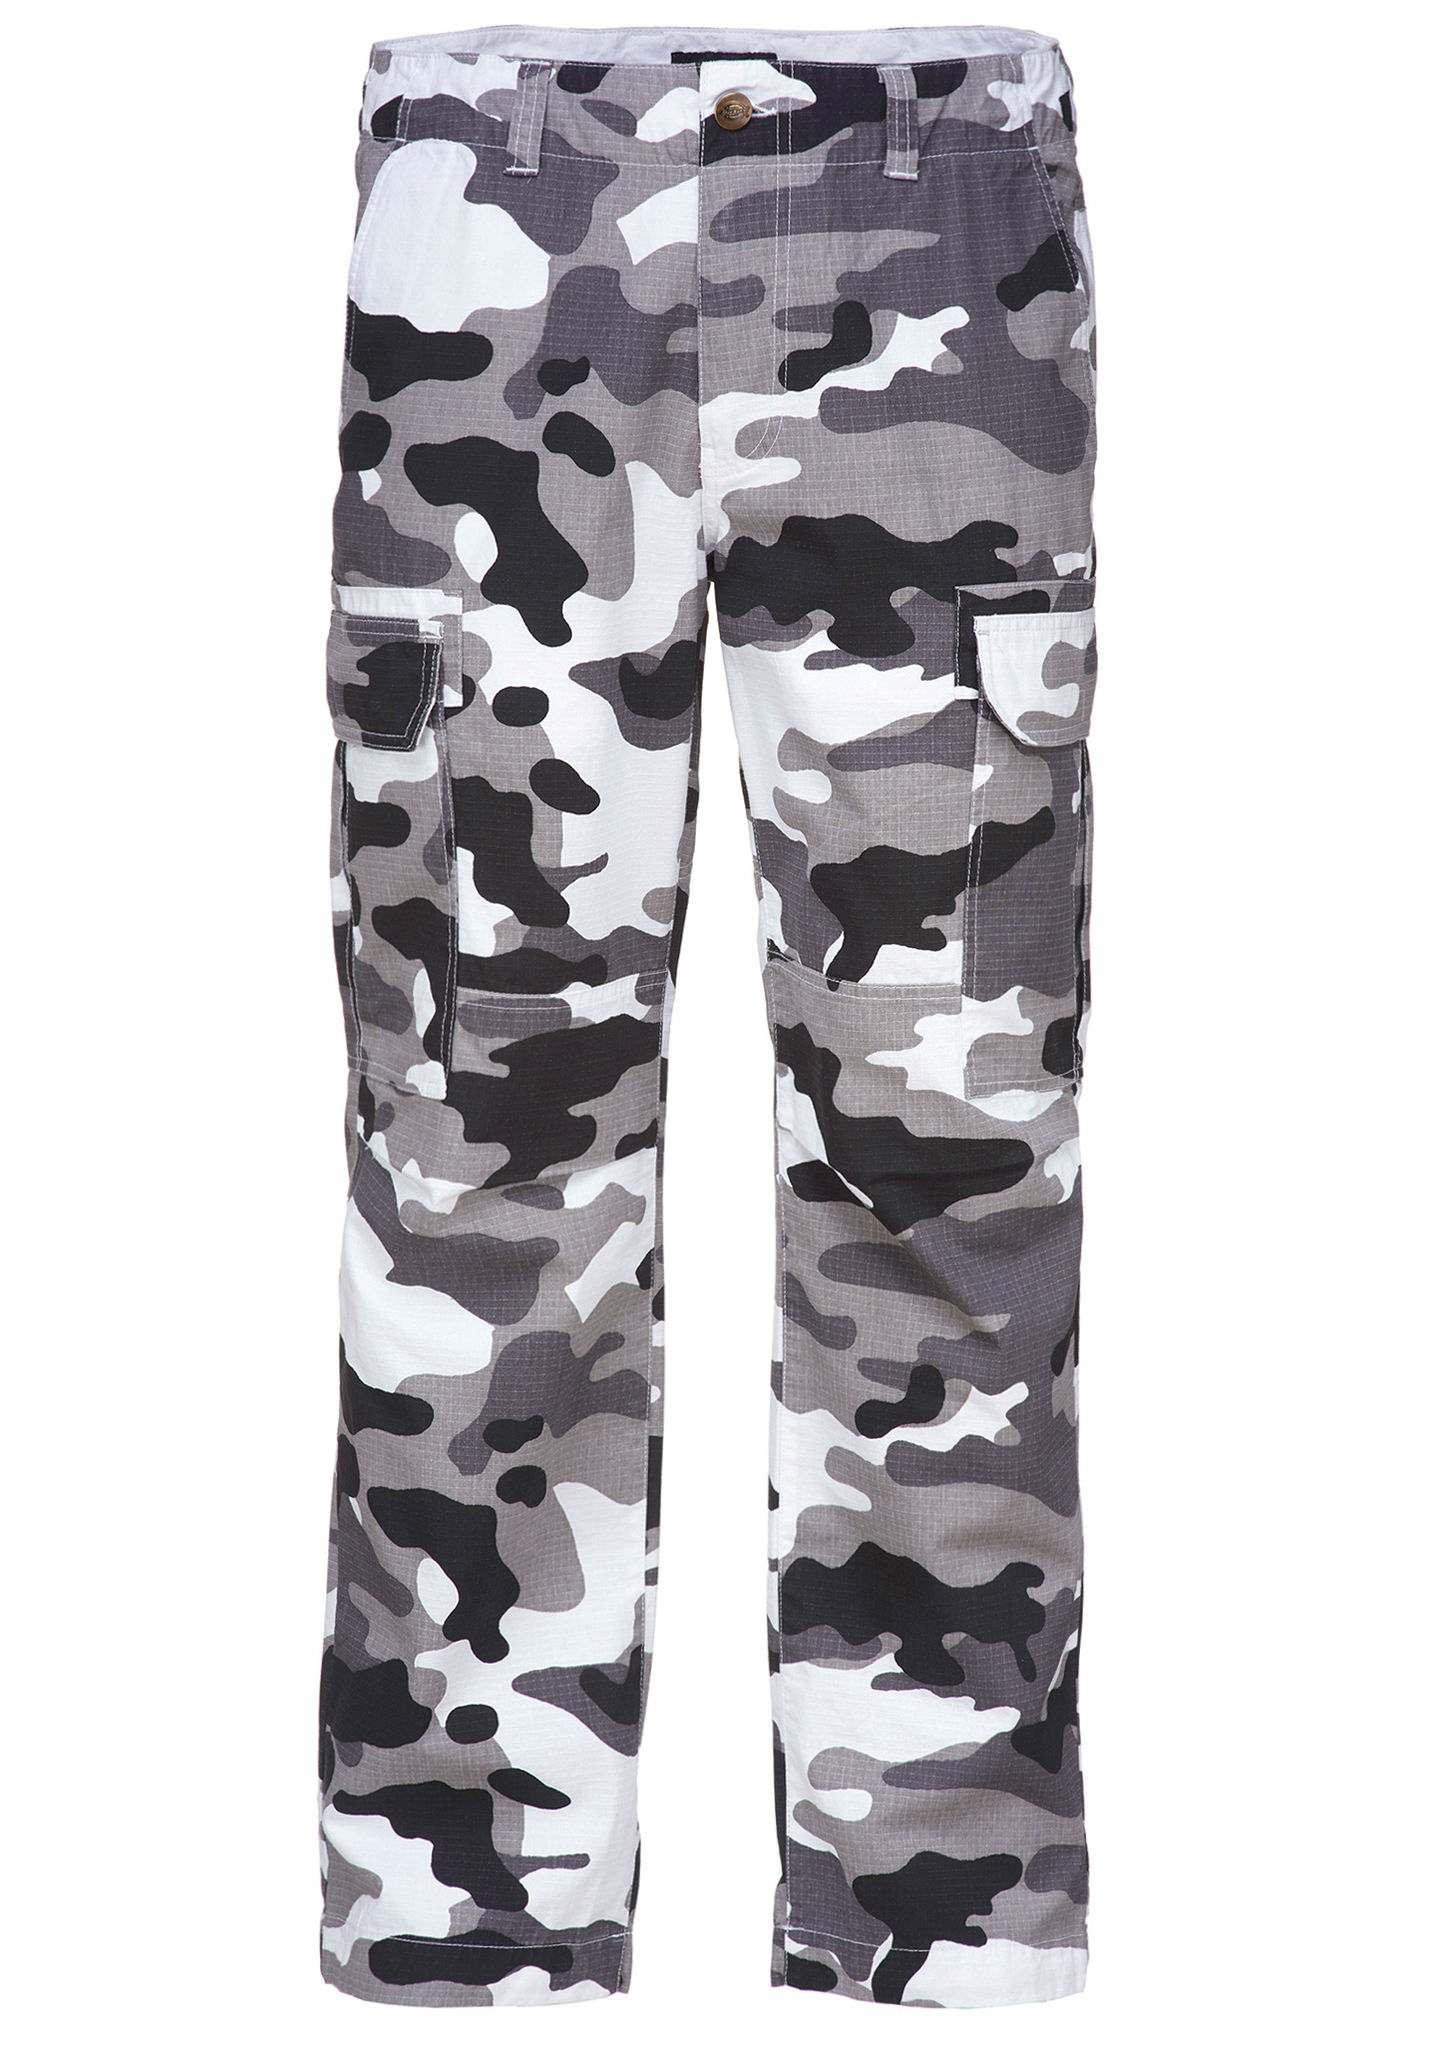 459bff94736993 Dickies New York - Cargo Pants for Men - Camo - Planet Sports